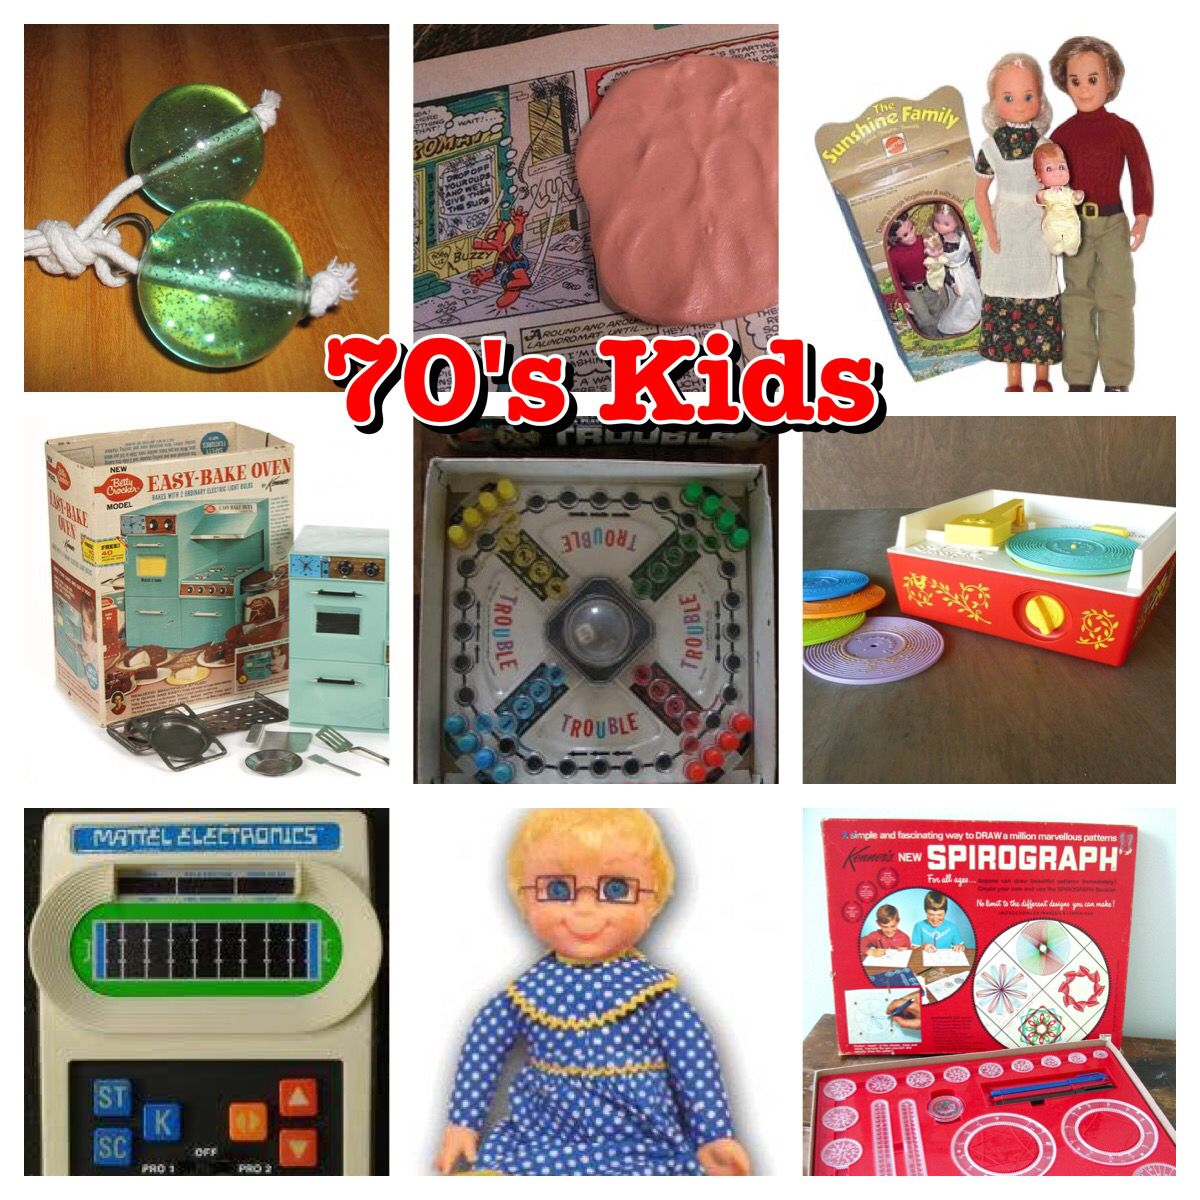 70's Kids - Toys from the 70's